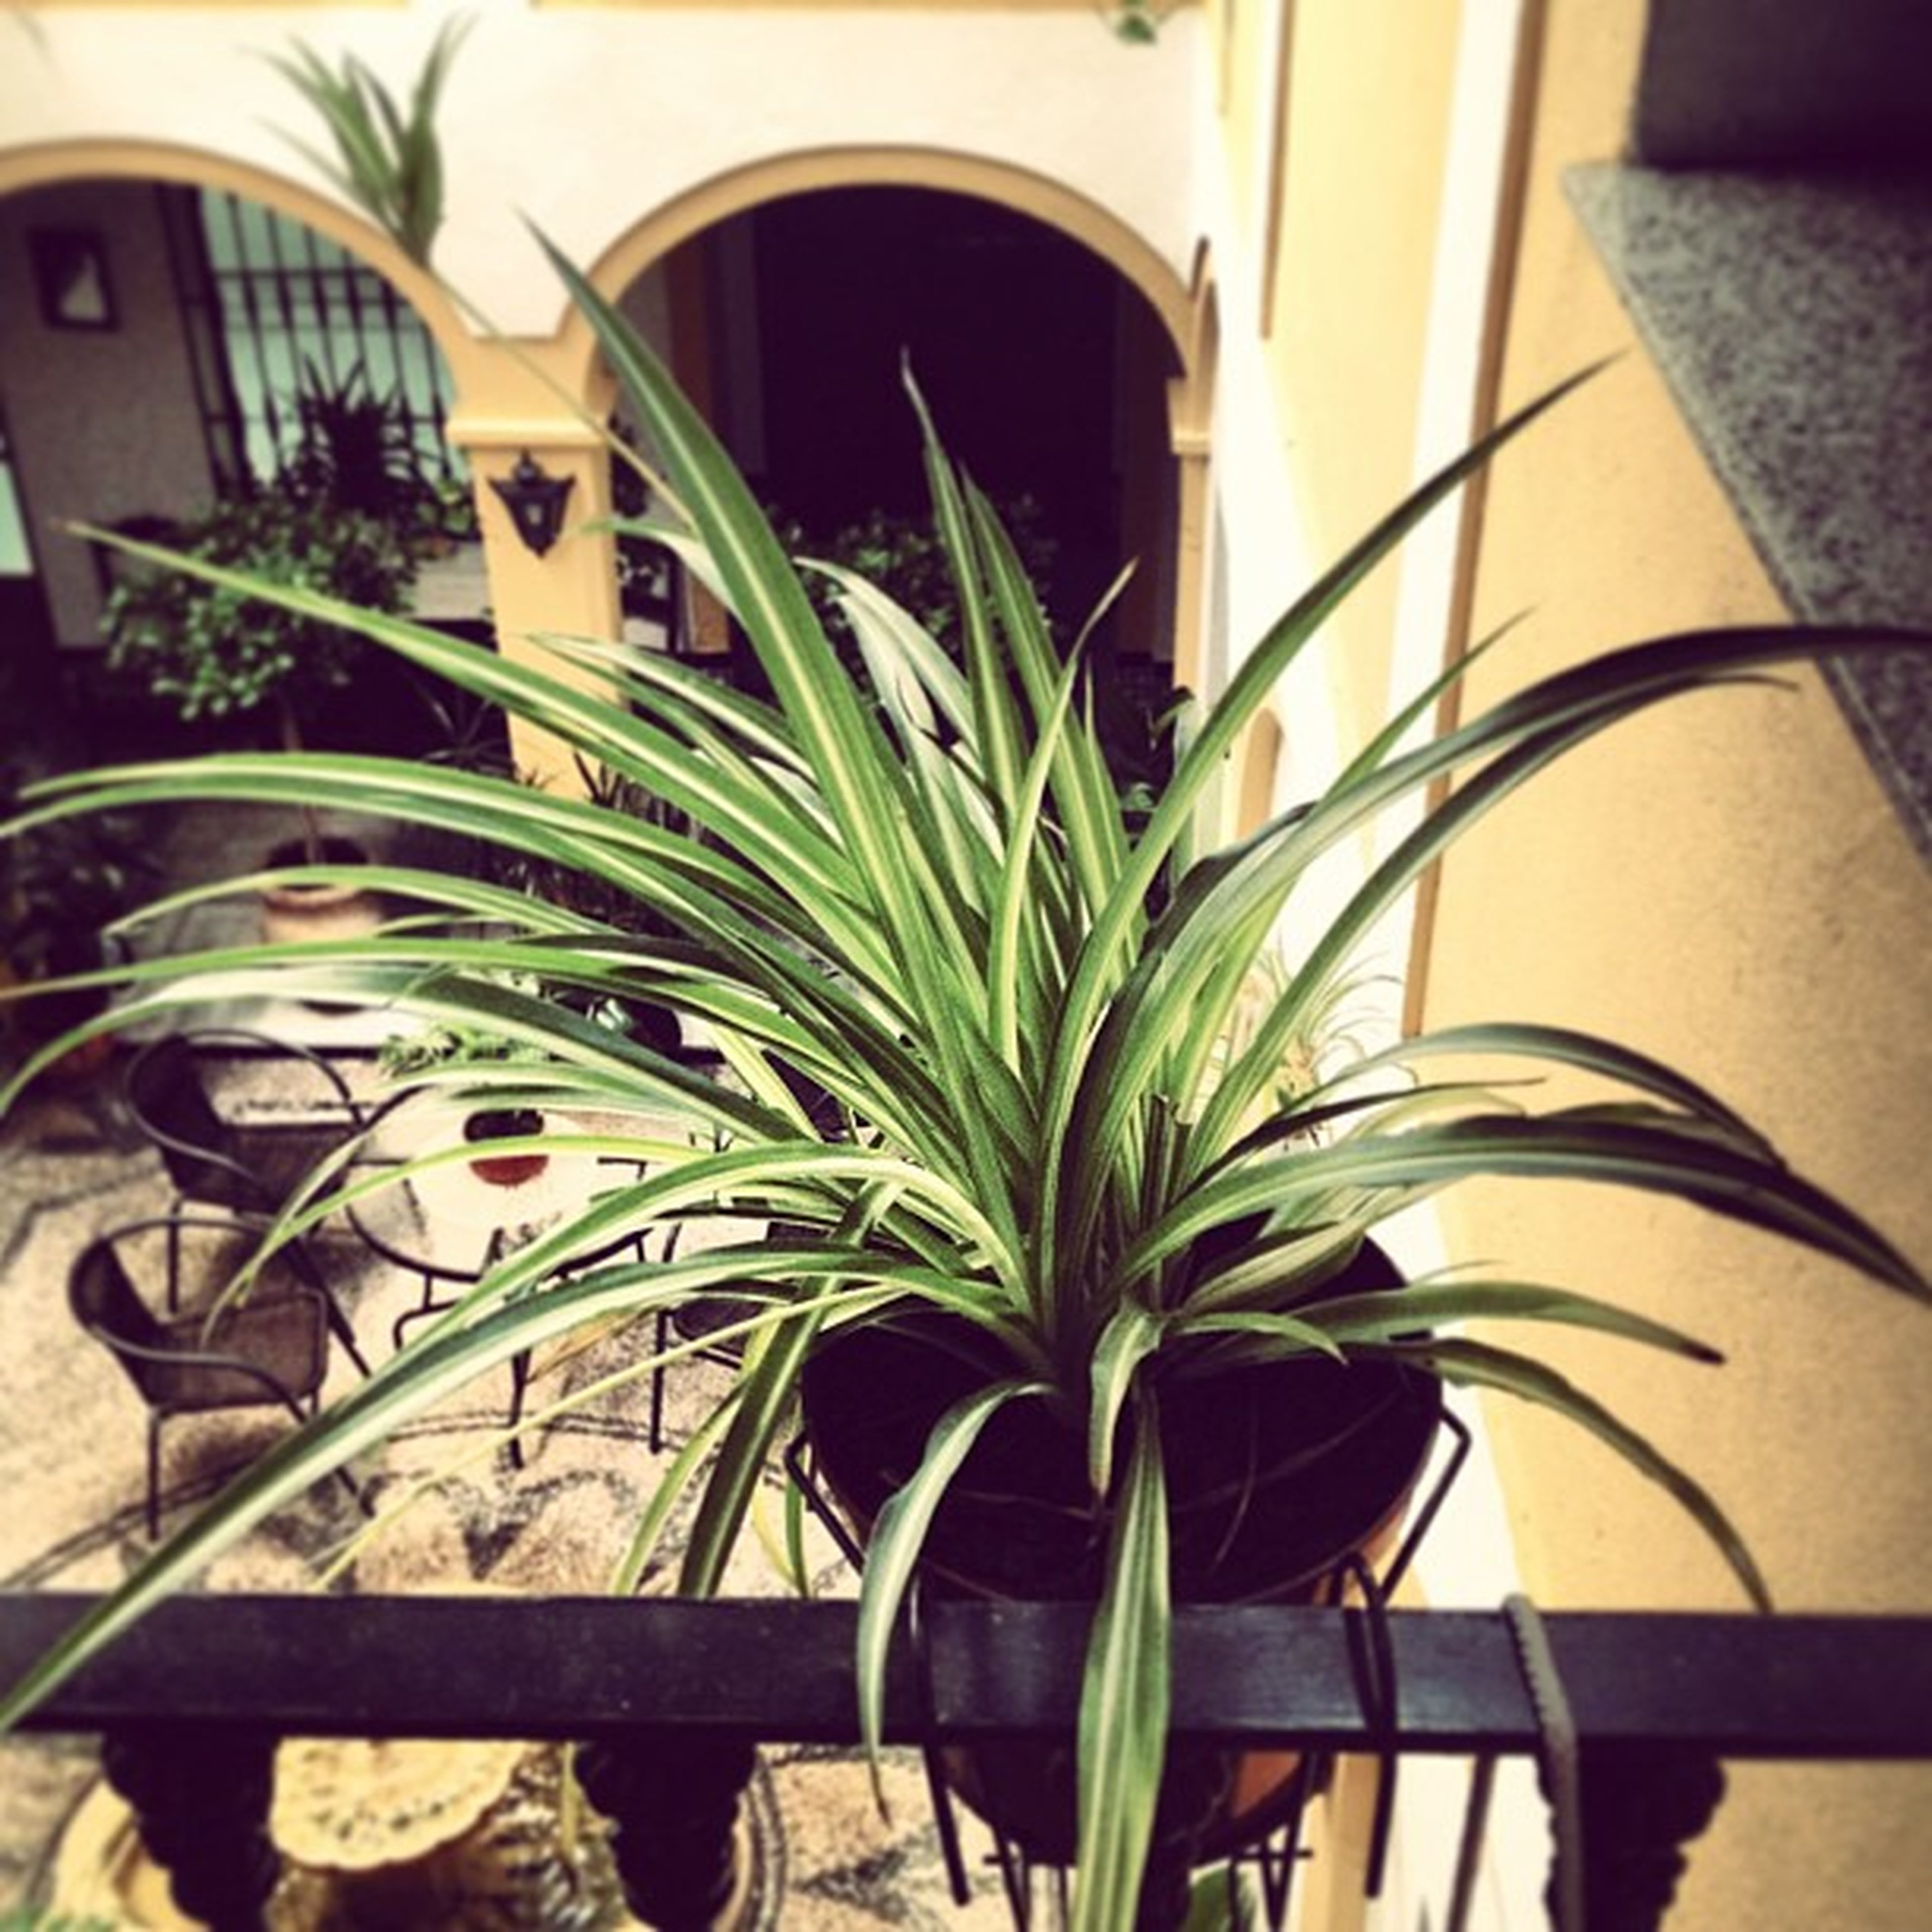 potted plant, plant, built structure, palm tree, growth, architecture, window, building exterior, indoors, chair, sunlight, balcony, house, no people, front or back yard, day, railing, nature, green color